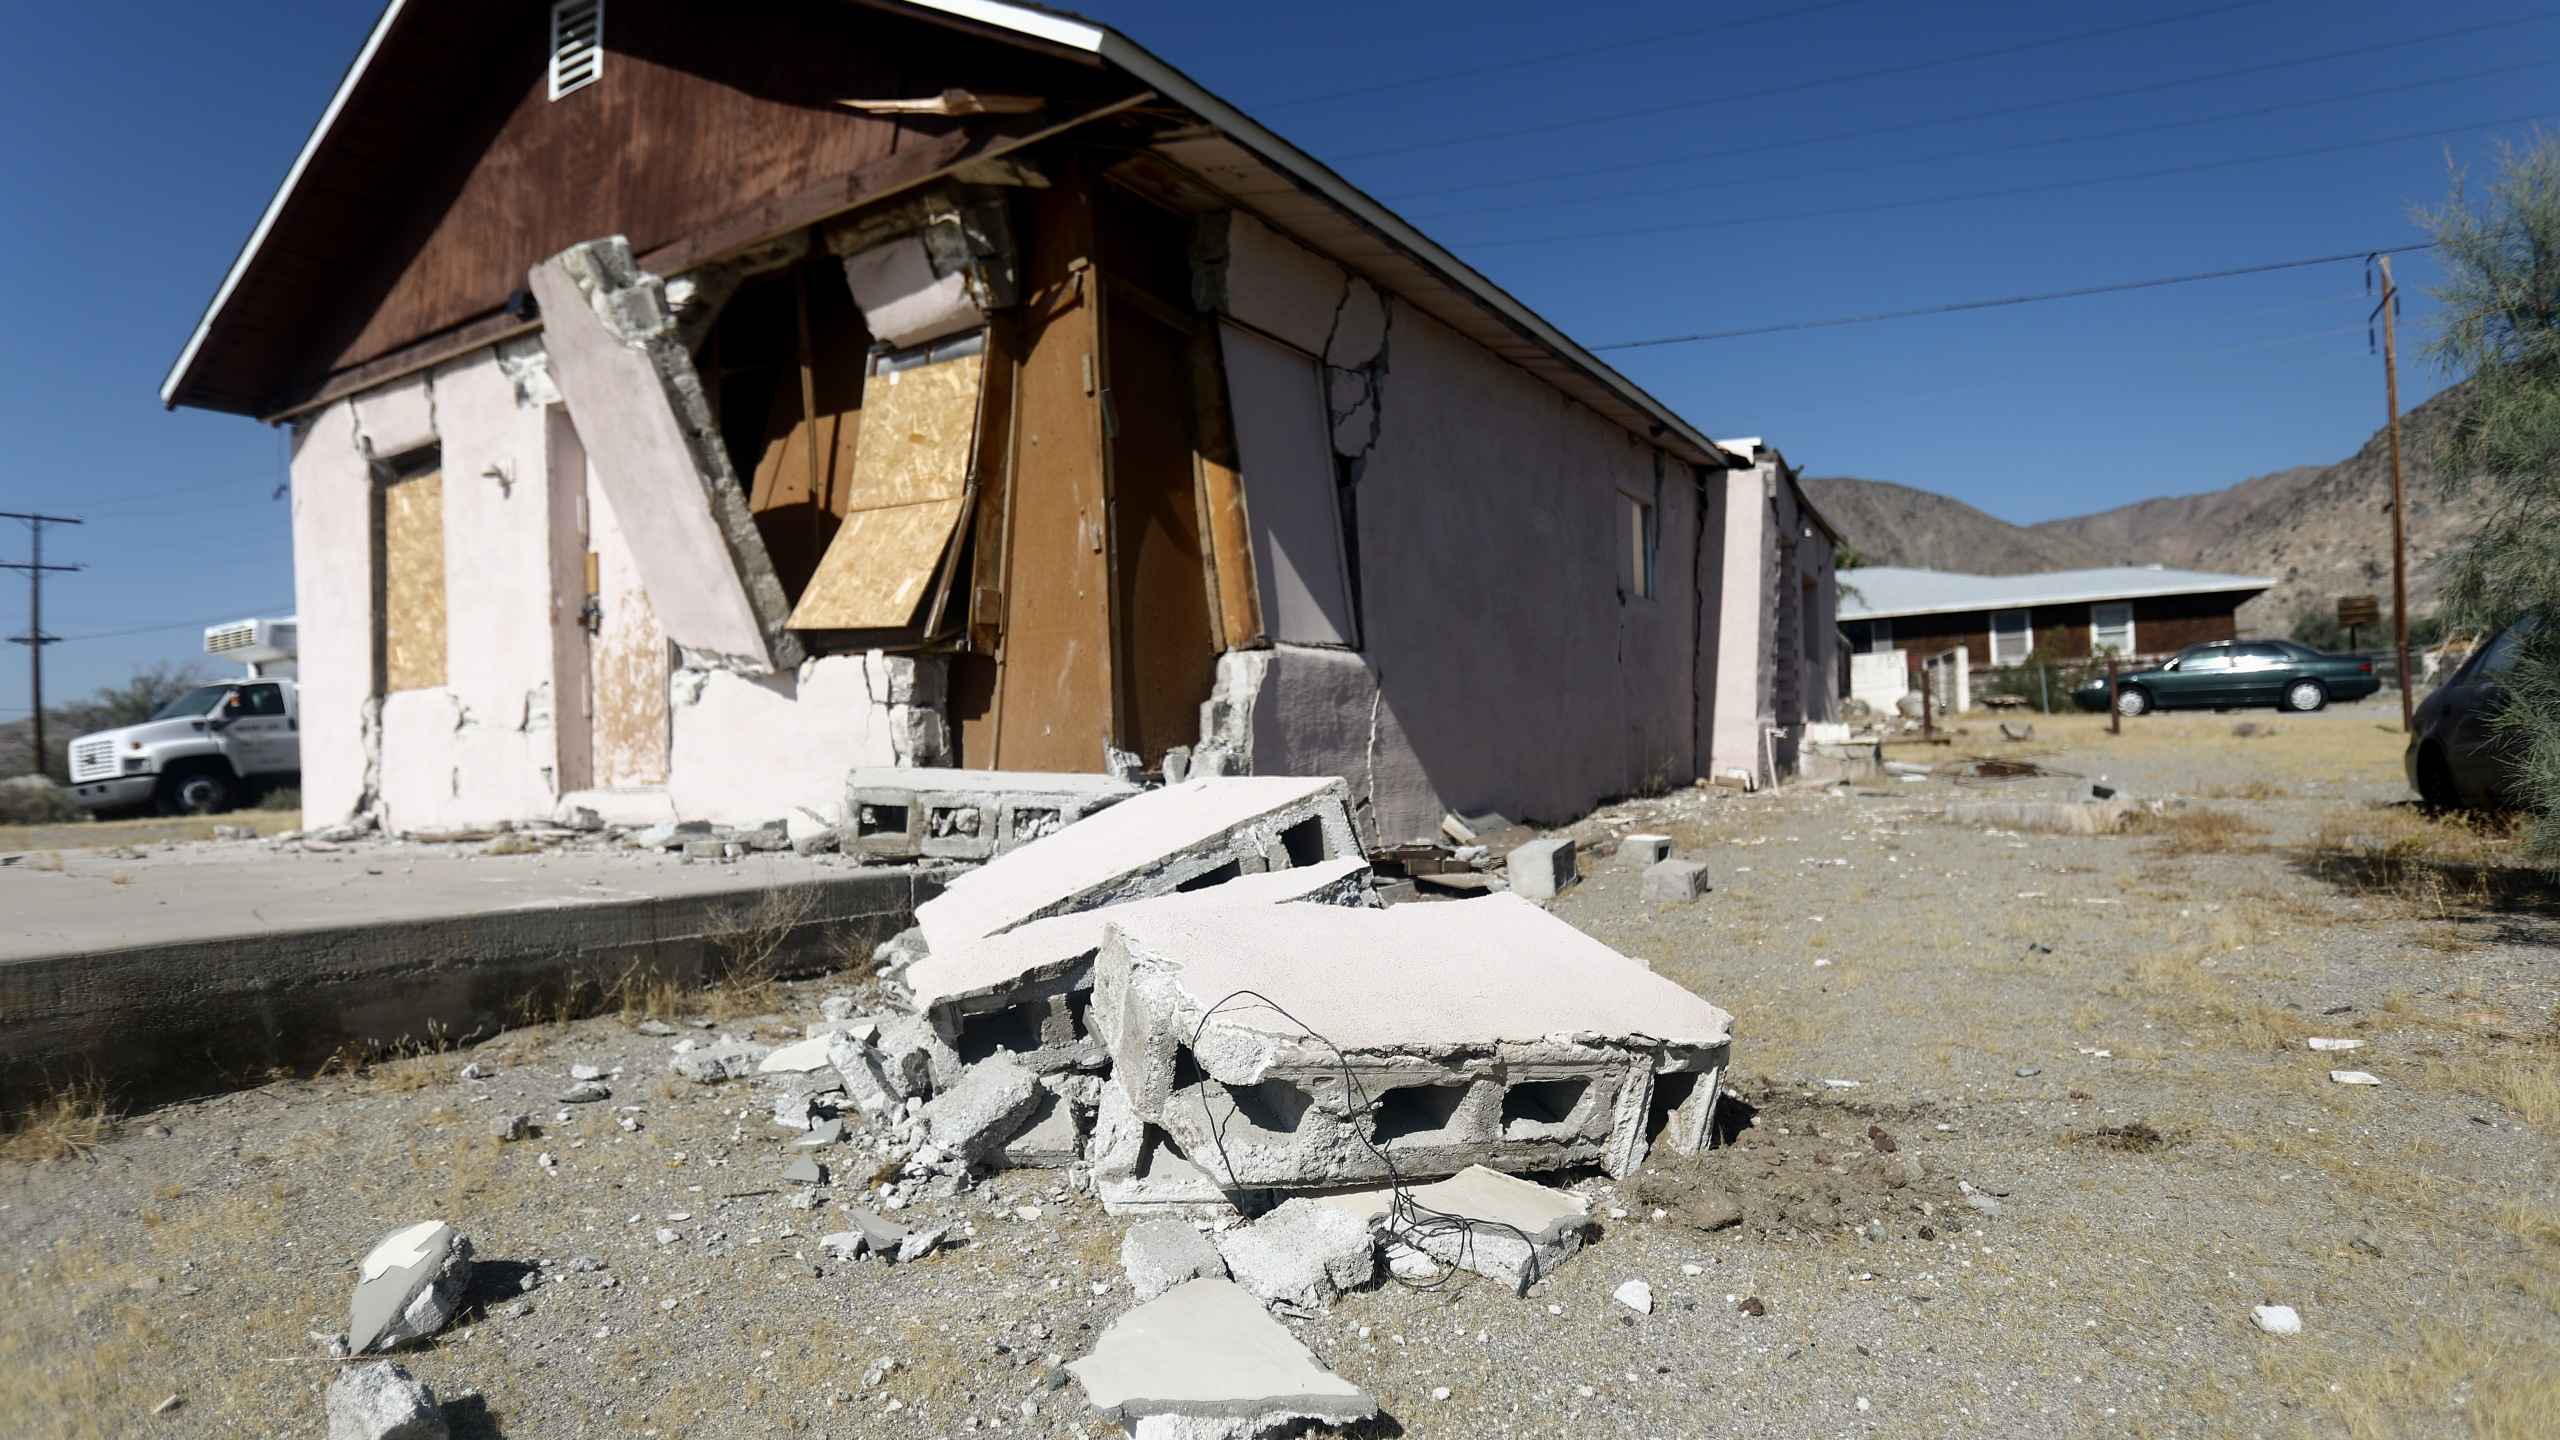 A house is damaged after a 7.1 magnitude earthquake struck in the area on July 6, 2019 in Trona, Calif. (Credit: Mario Tama/Getty Images)